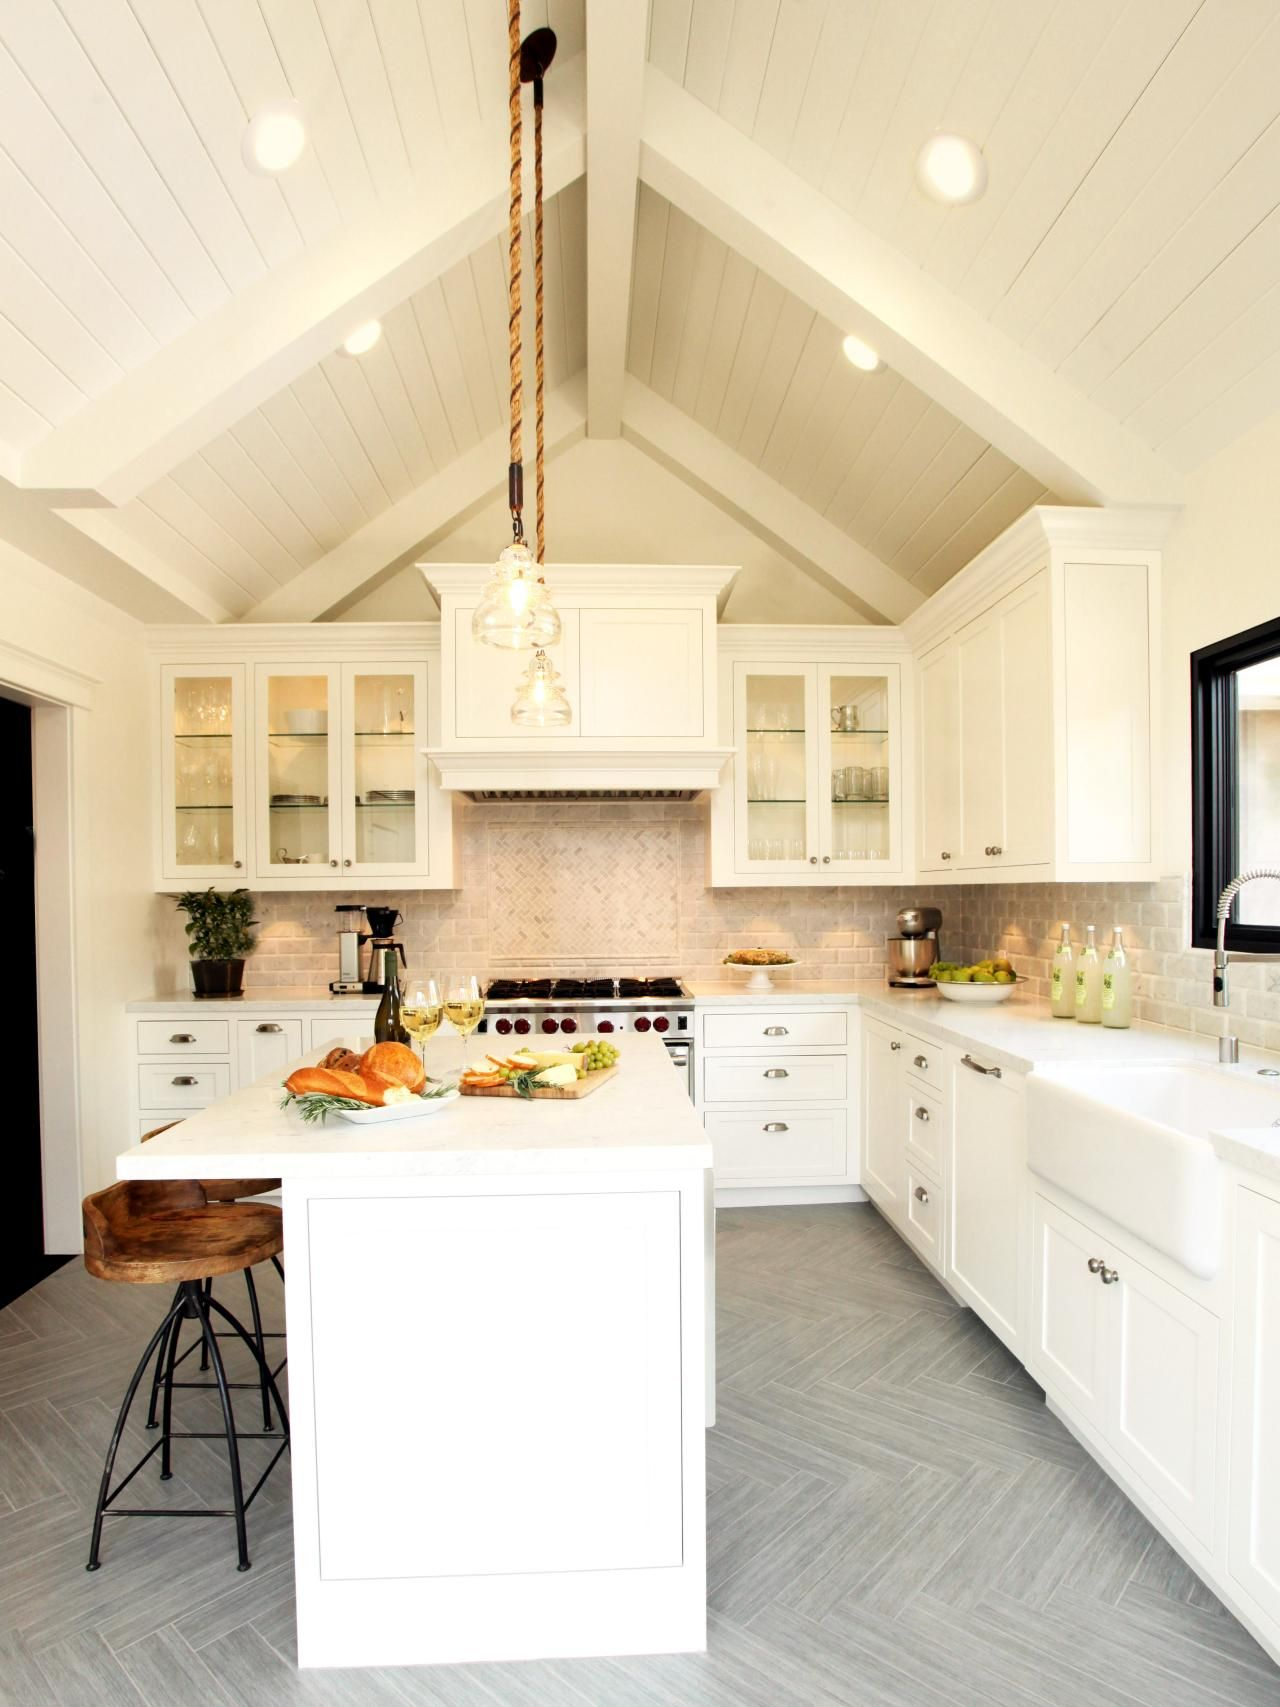 Modern Farmhouse Kitchen | Pinterest | Modern farmhouse kitchens ...